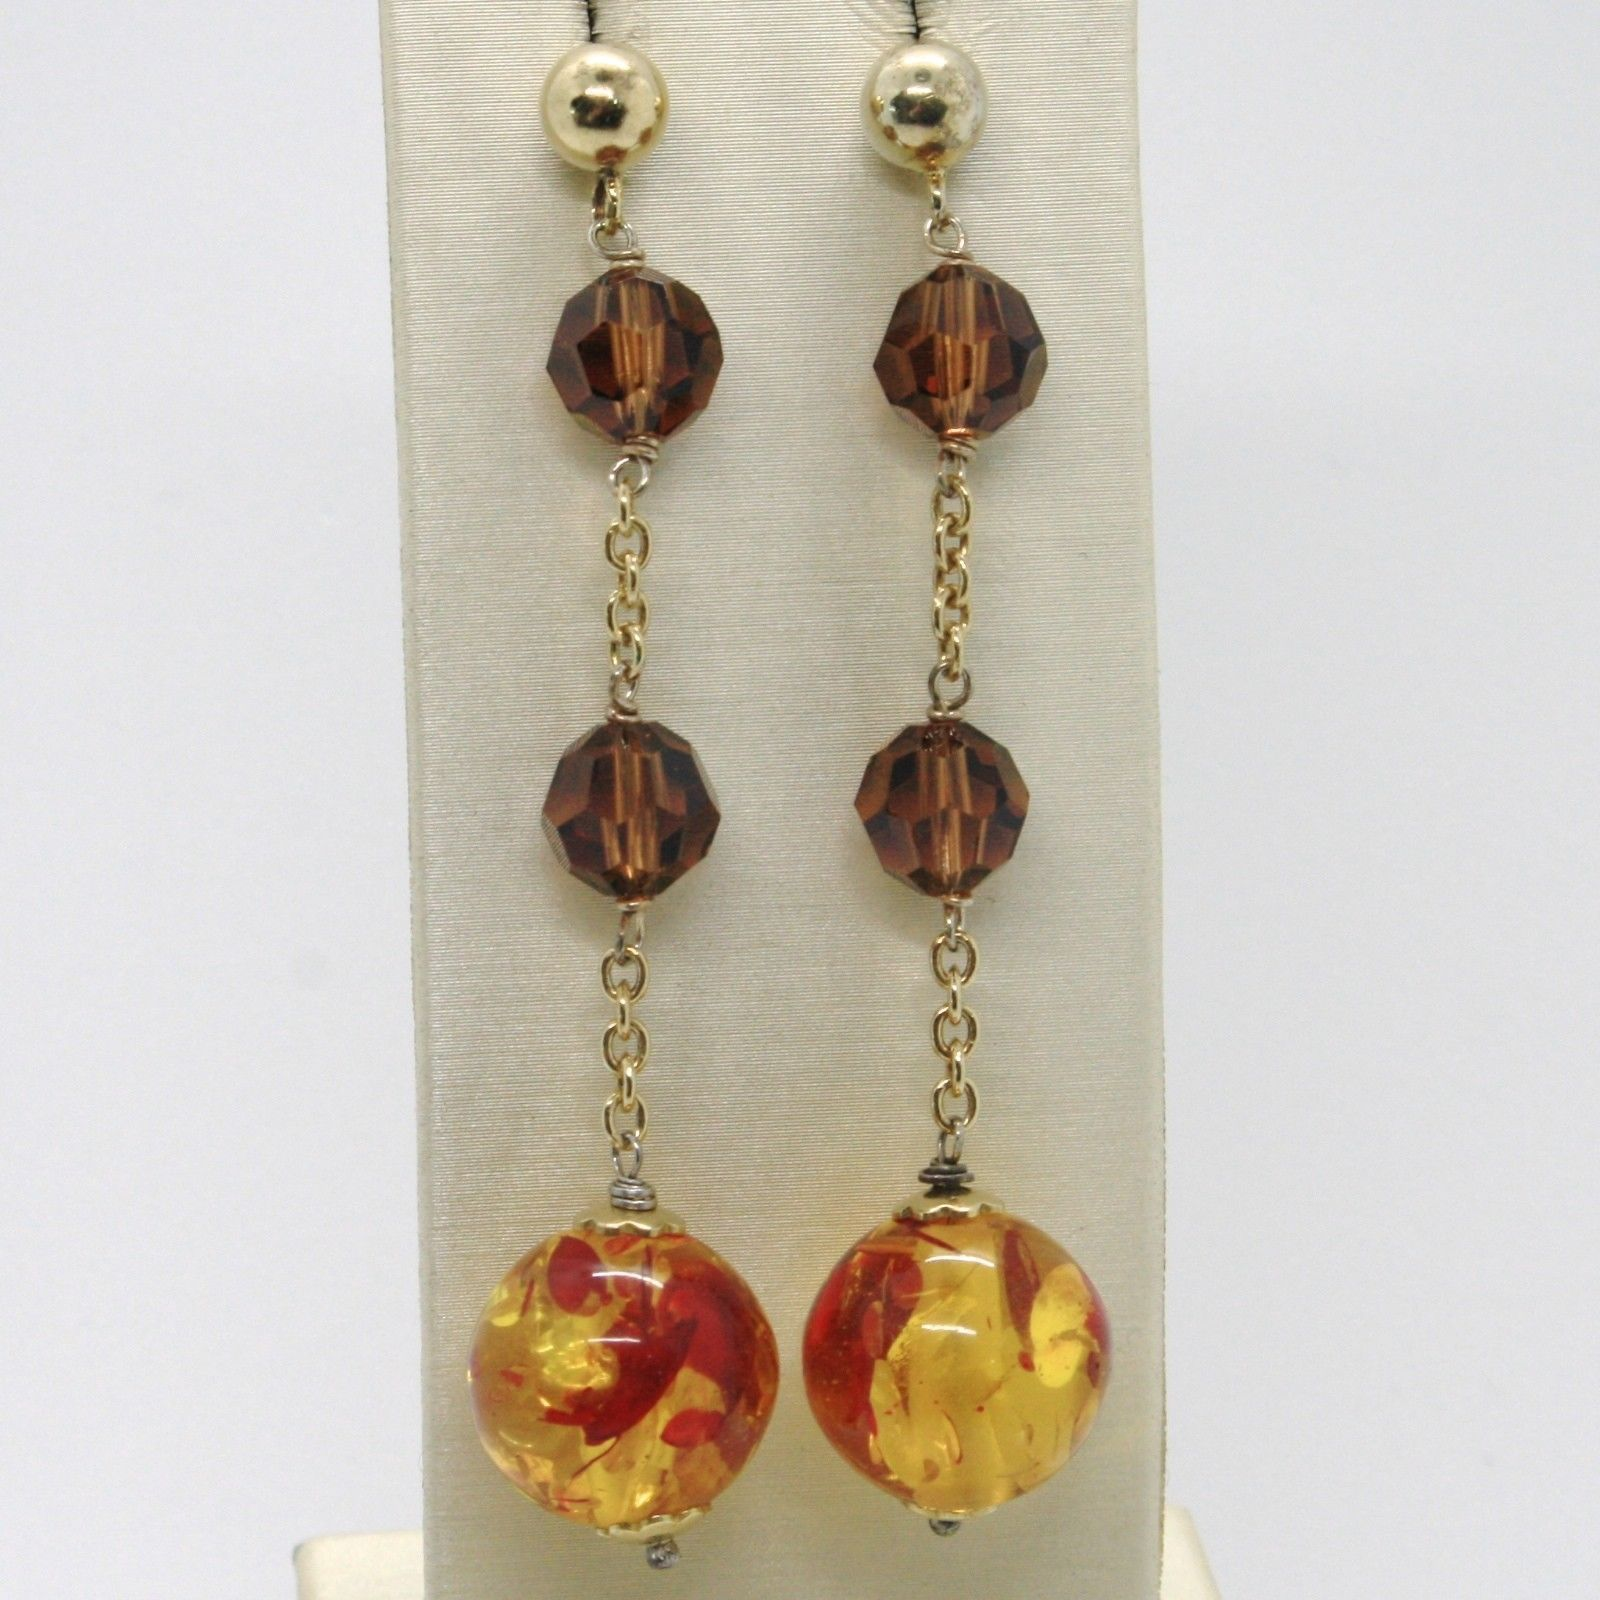 EARRINGS SILVER 925 LAMINATED GOLD WITH AMBER SYNTHETIC AND CRYSTALS STRASS